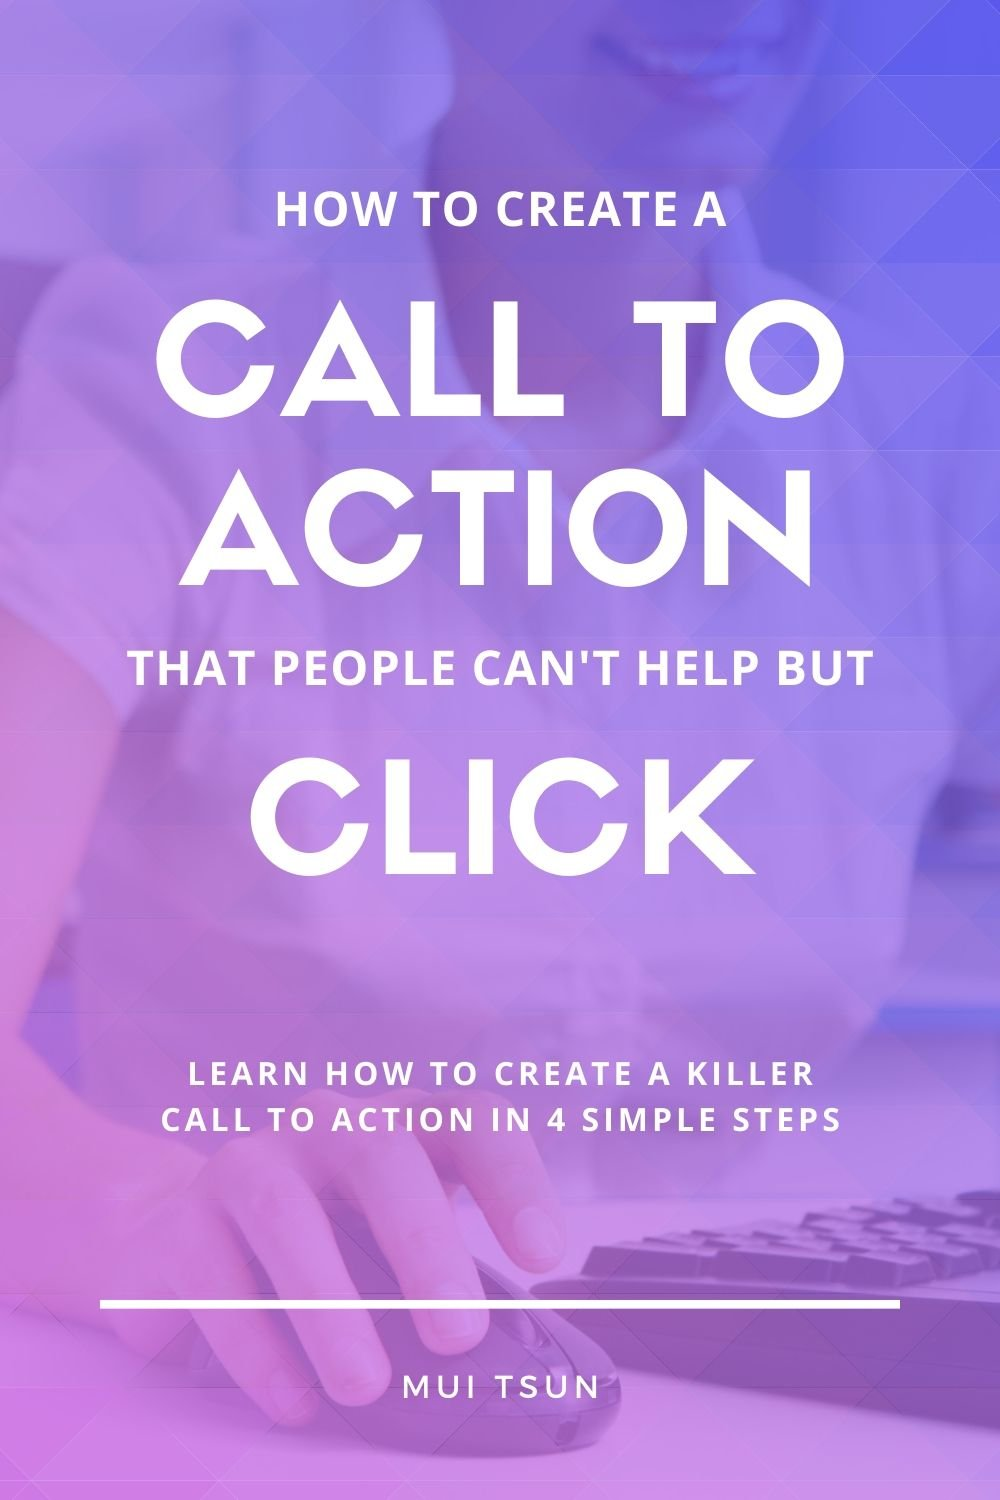 How To Create A Call To Action That People Can't Help But Click